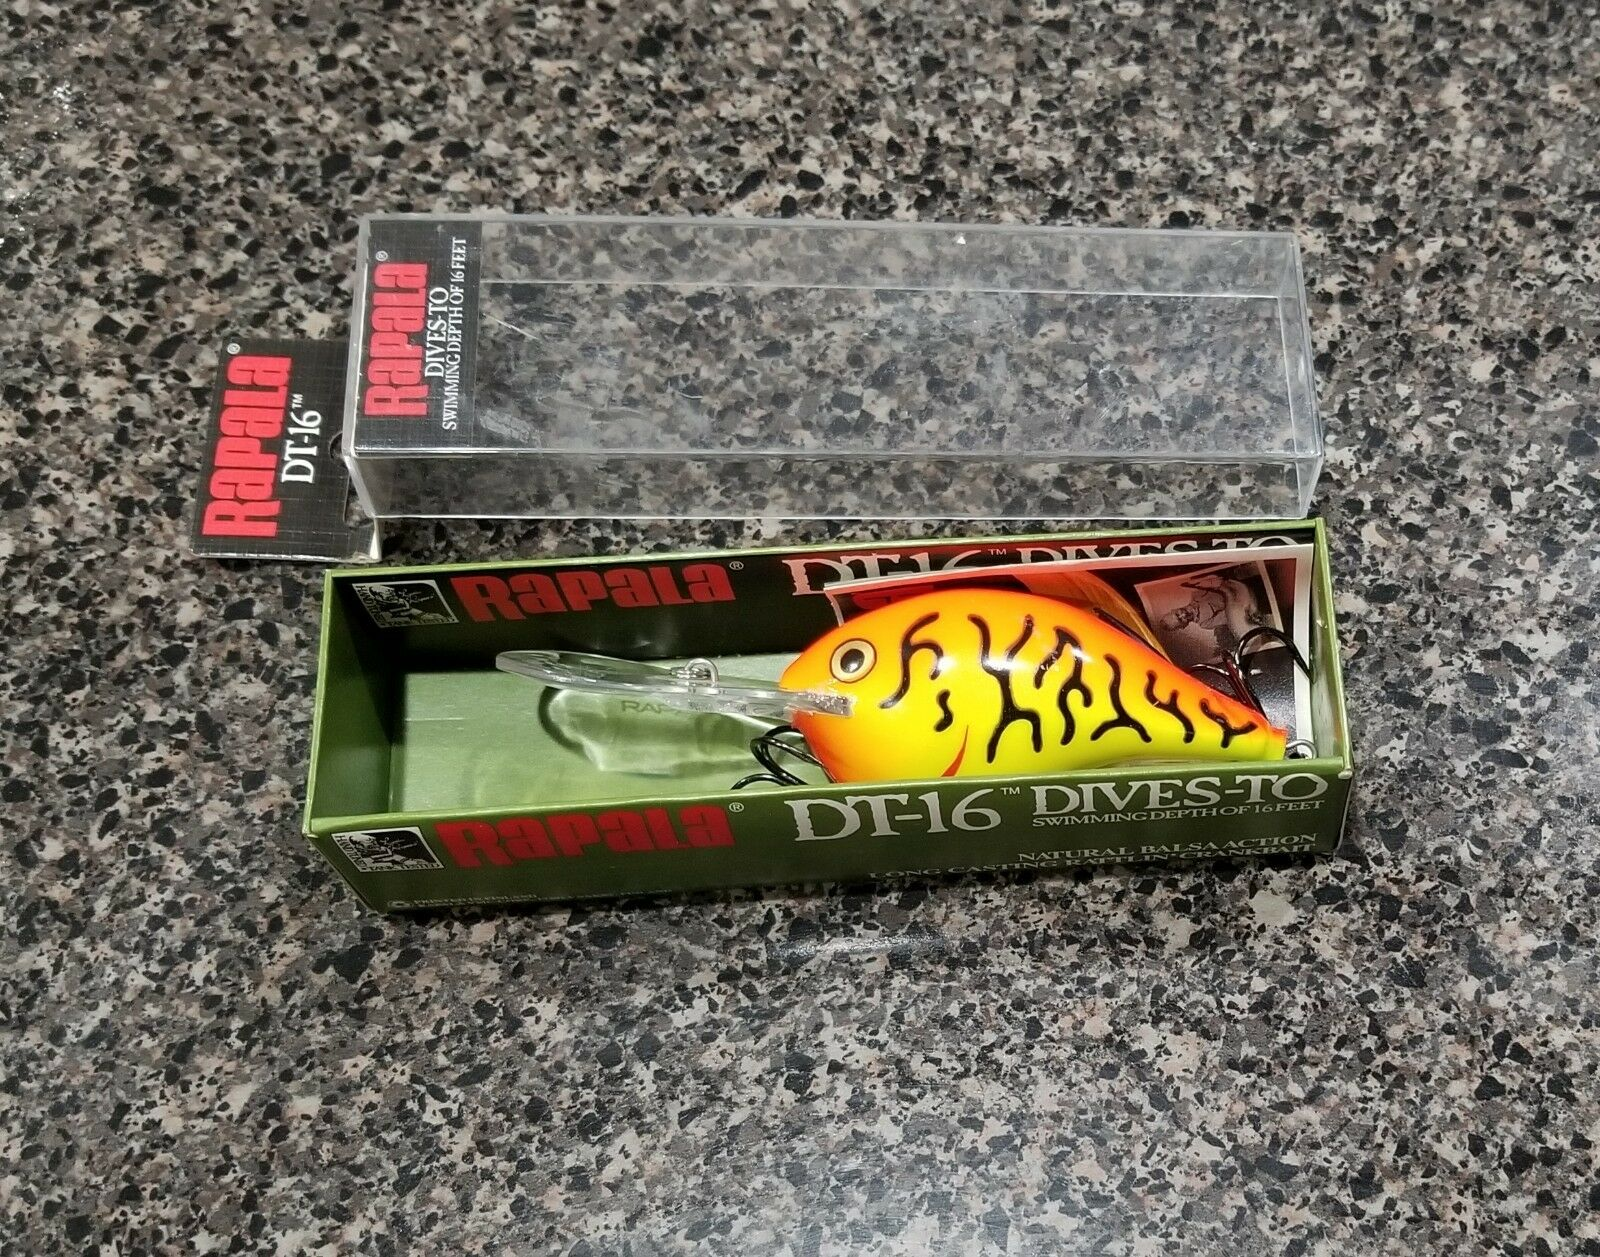 Rapala Dives-To DT-16 HT Hot Tiger Fishing Lure Crankbait Very Rare color